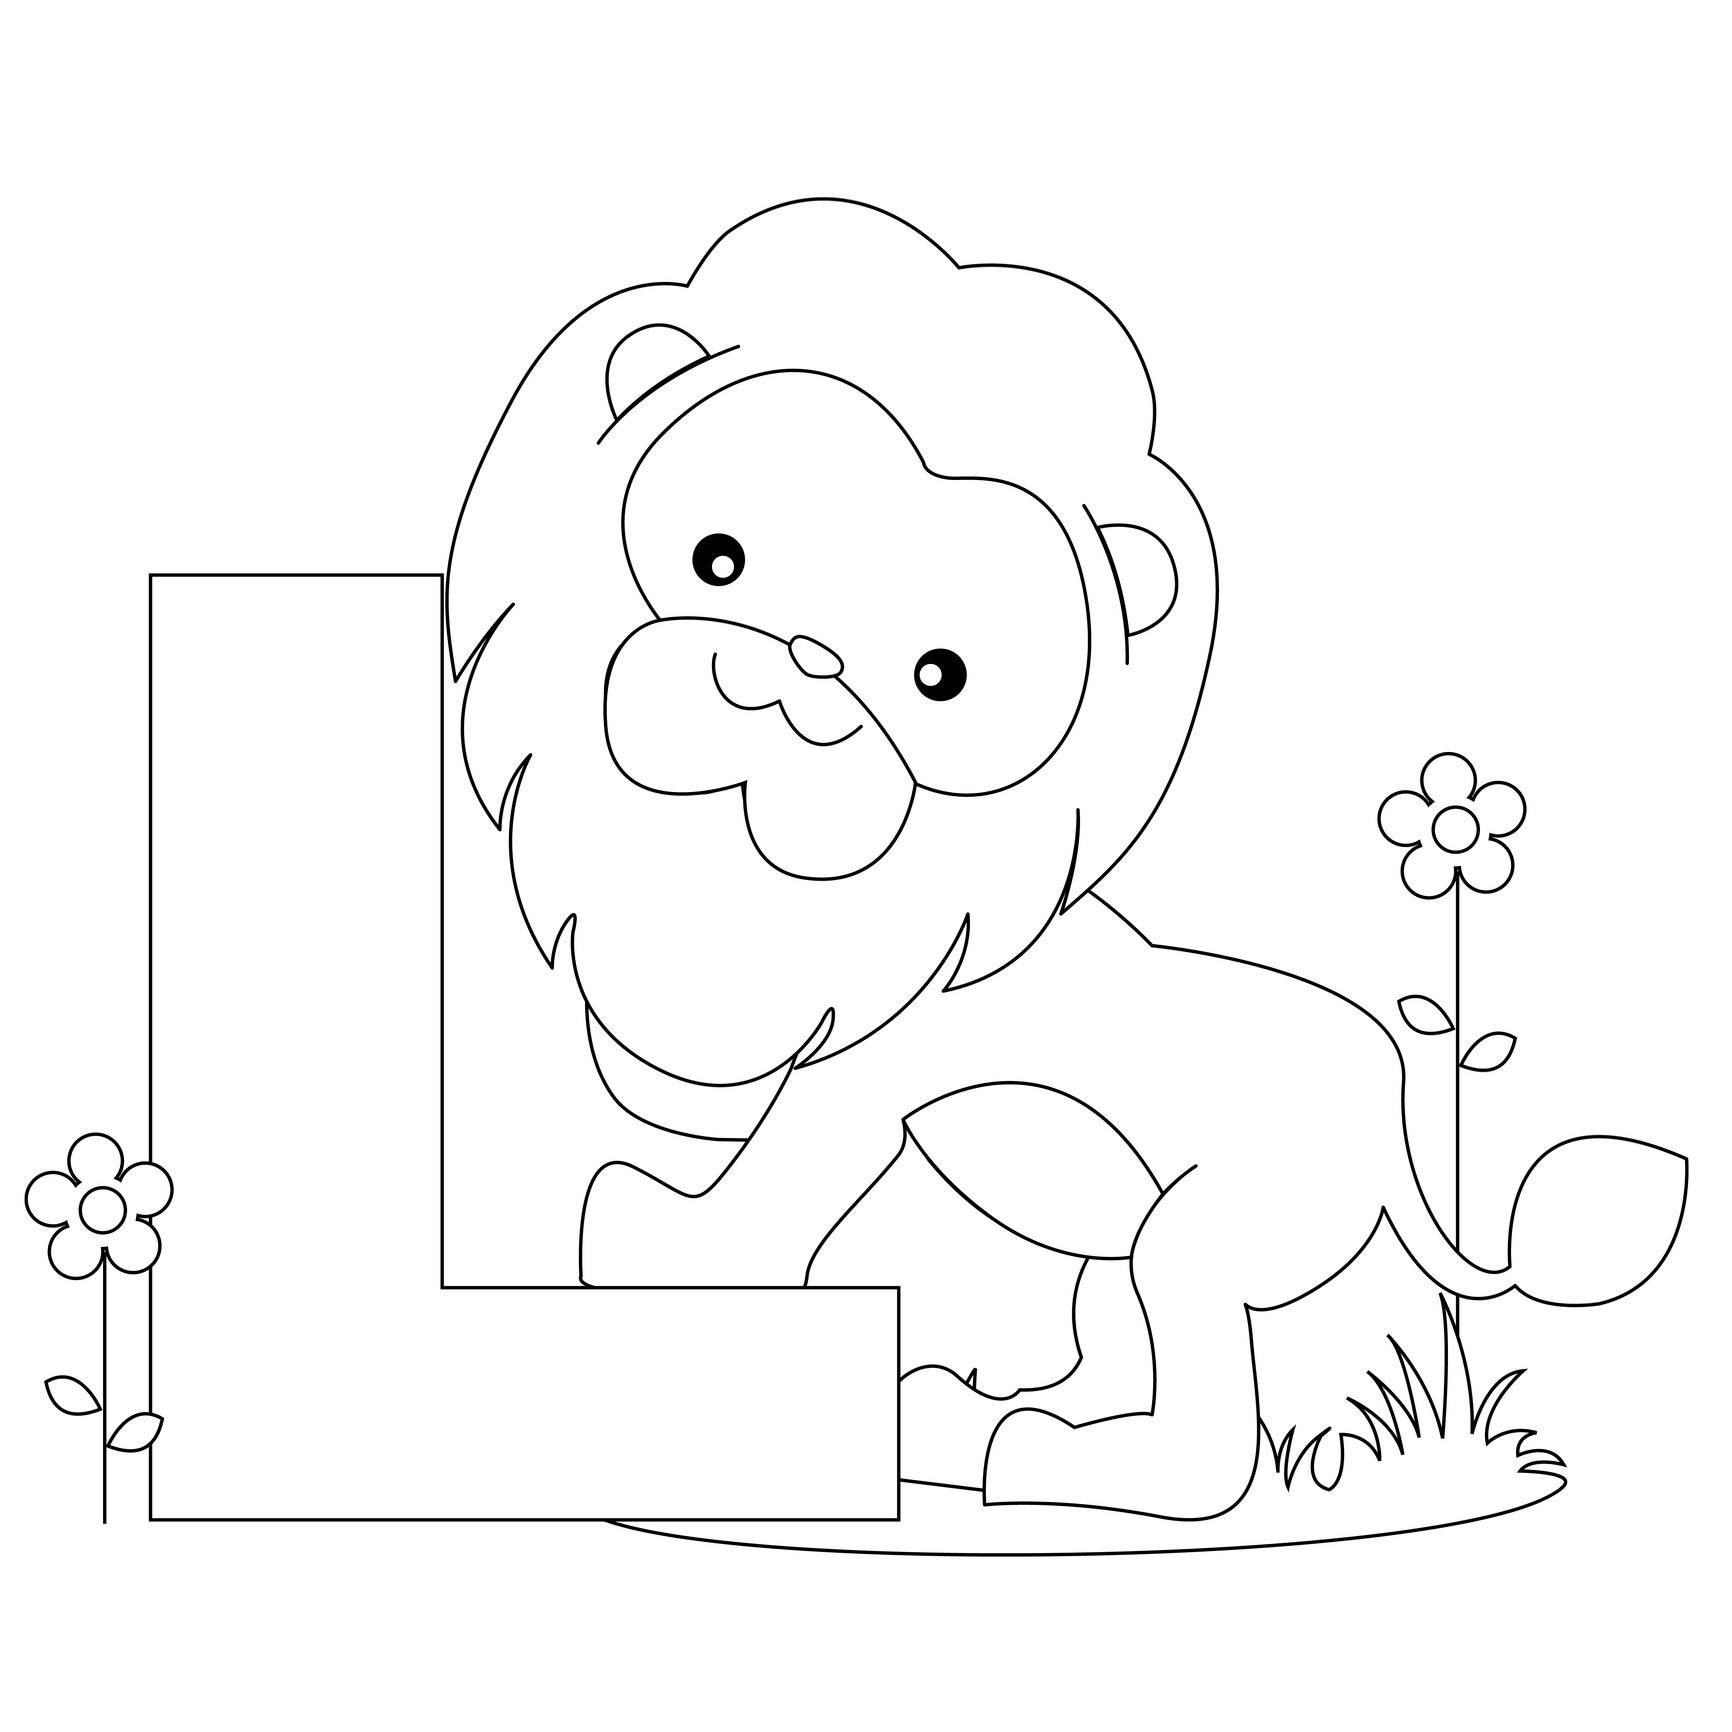 abc letters to color free printable alphabet coloring pages for kids best color abc to letters